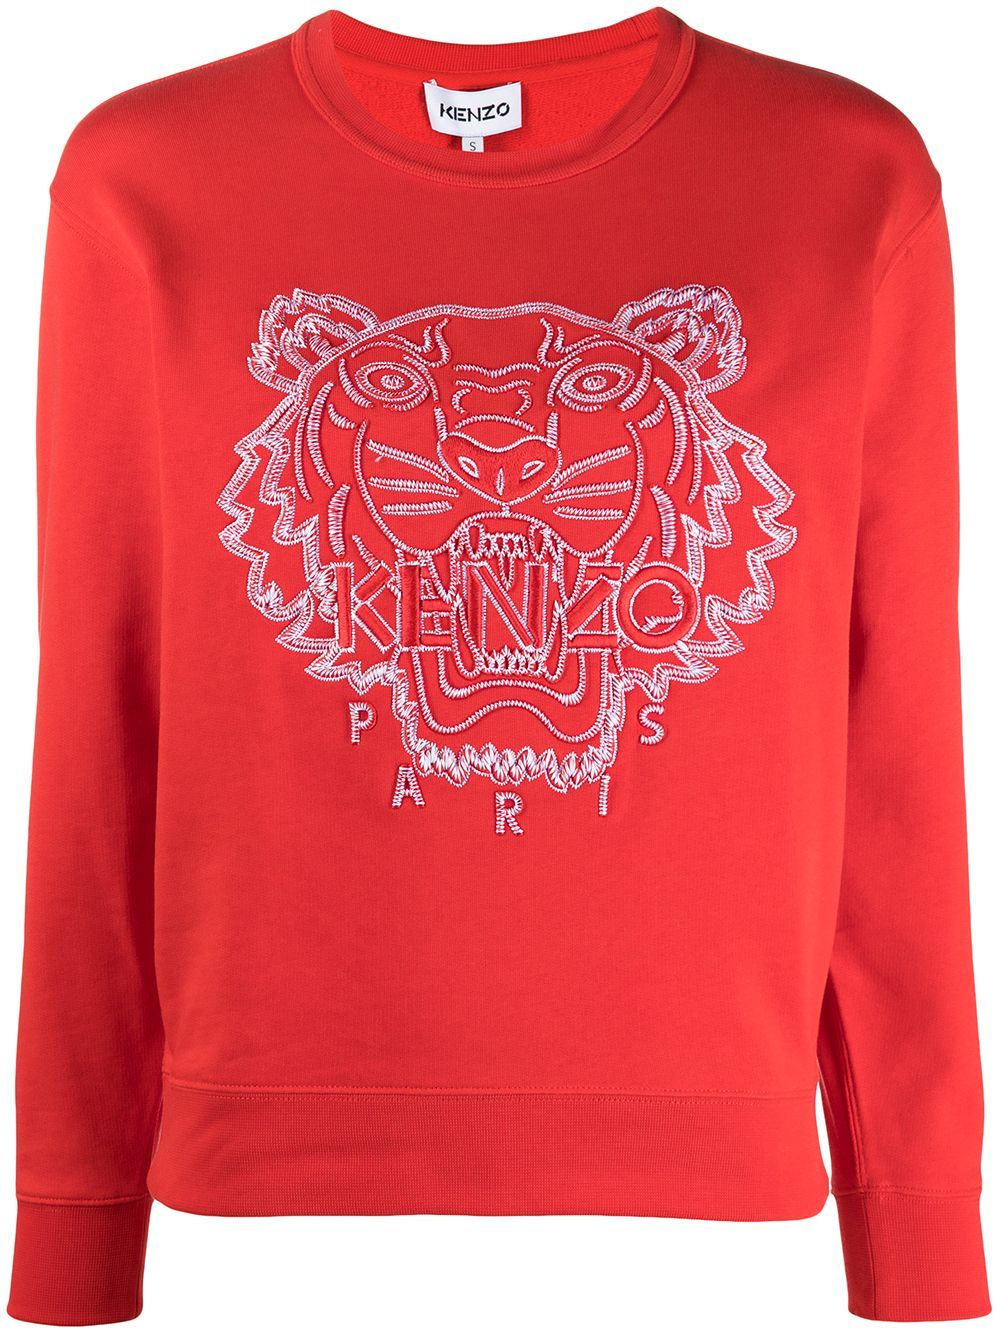 Kenzo KENZO WOMEN'S FB52SW8244MN21 RED COTTON SWEATSHIRT